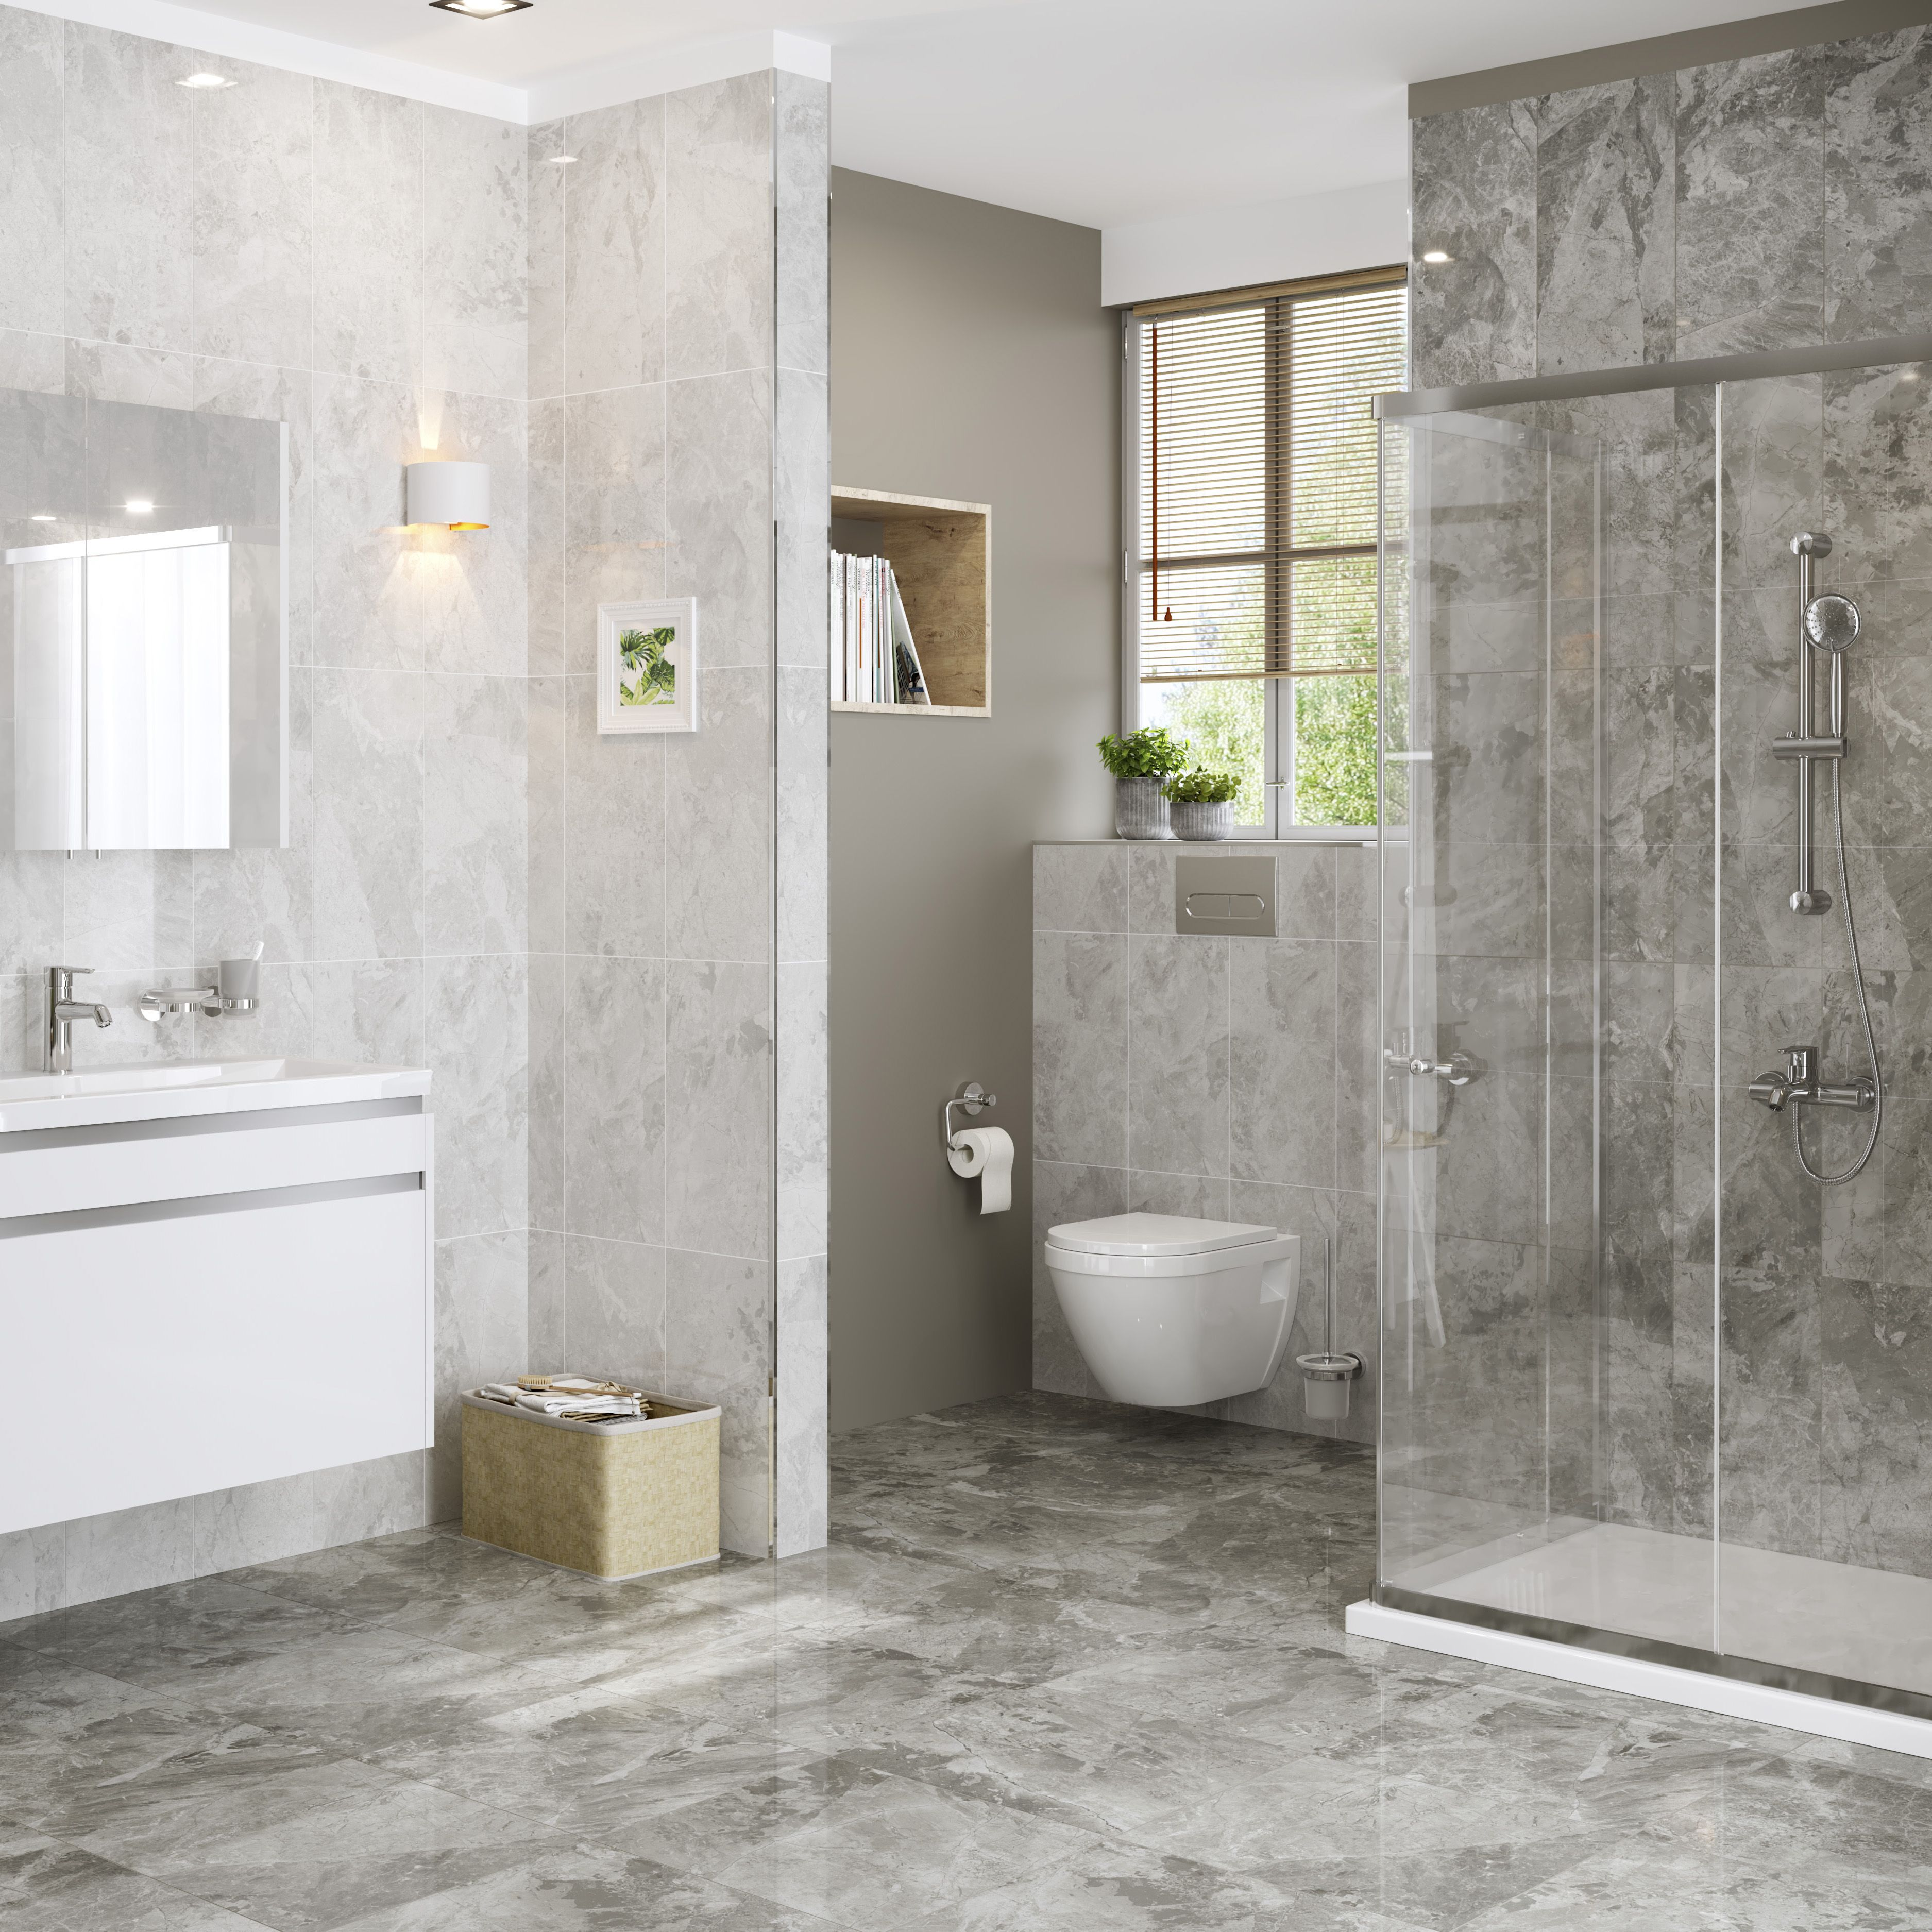 Marble Effect Ceramic Wall Tile